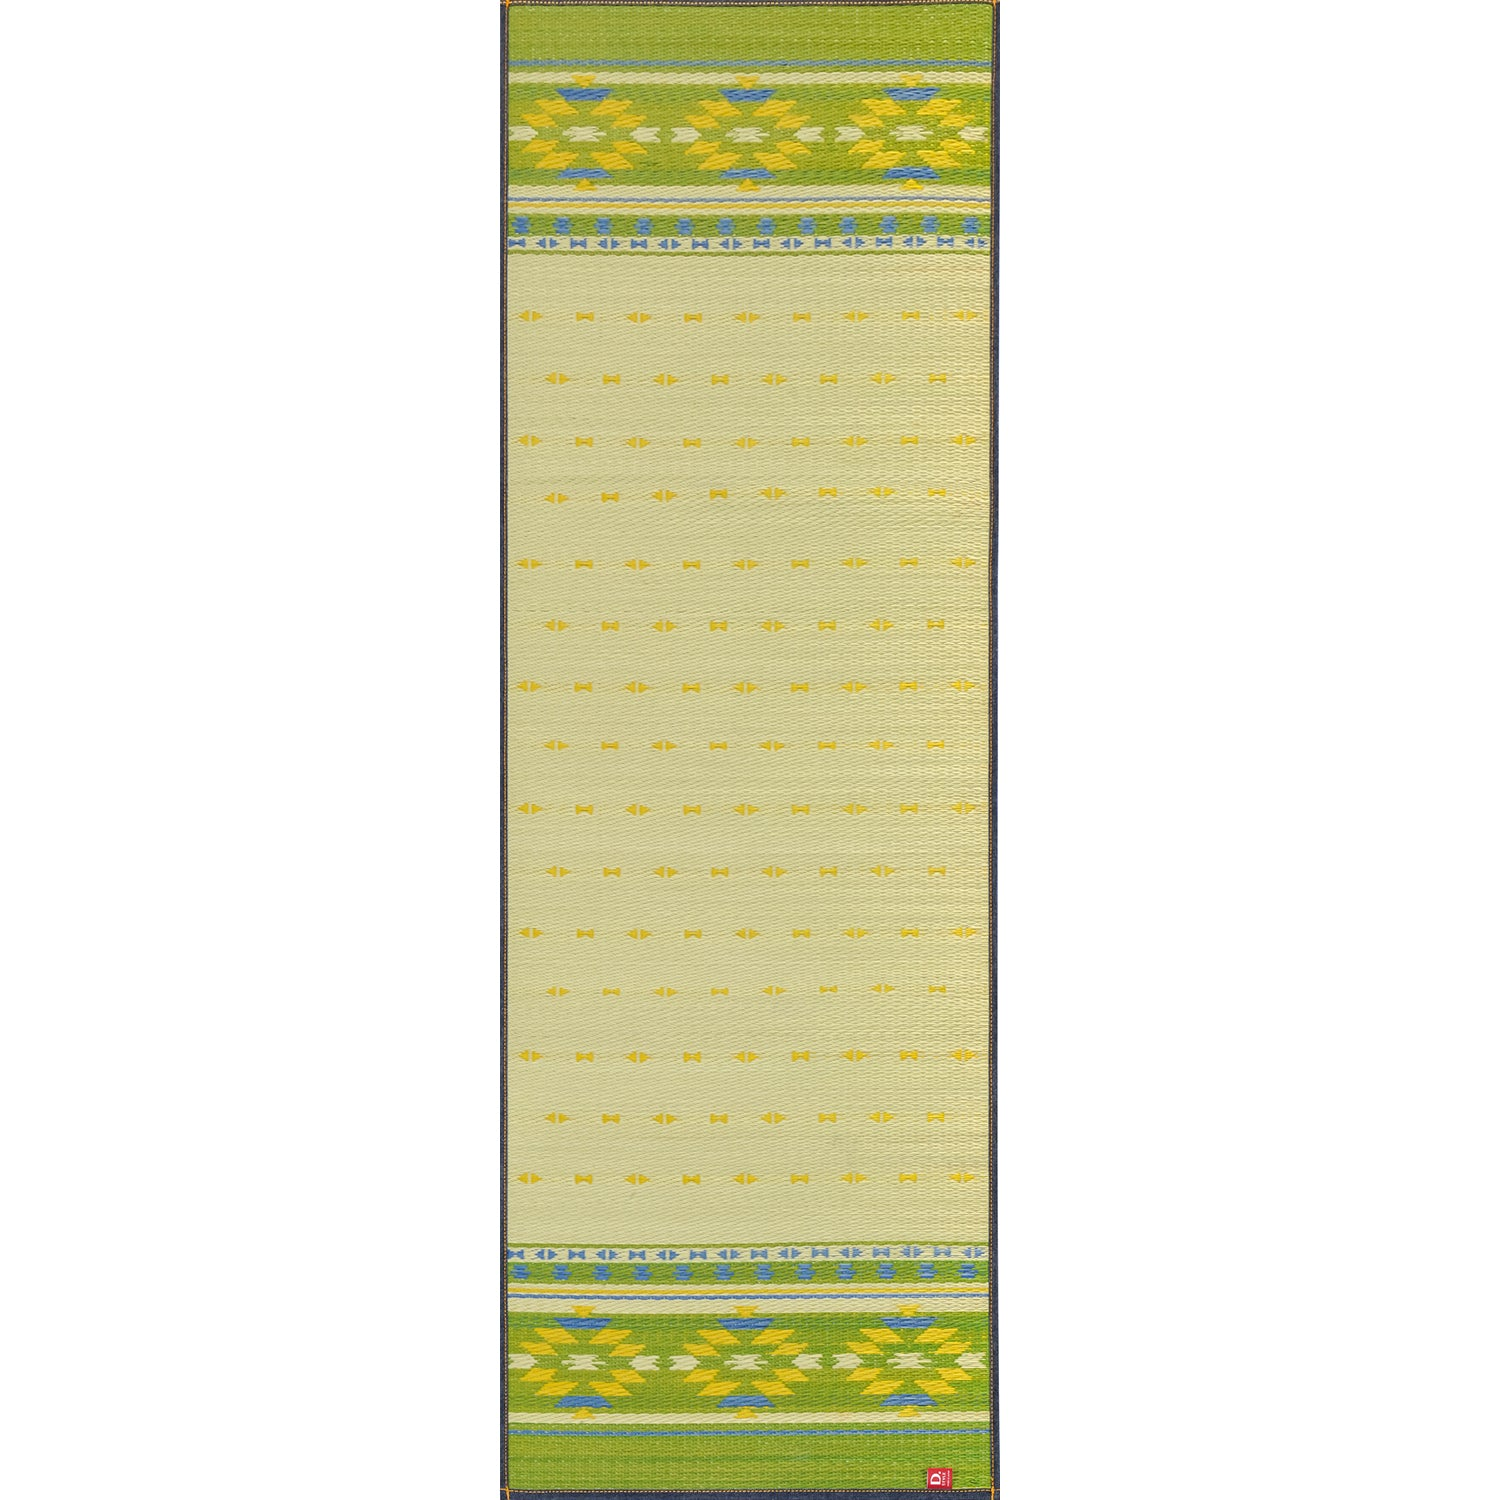 Natural Relaxing Tatami Yoga Mat - Earth (GN) -  Tatami Yoga Mat - IKEHIKO JAPAN